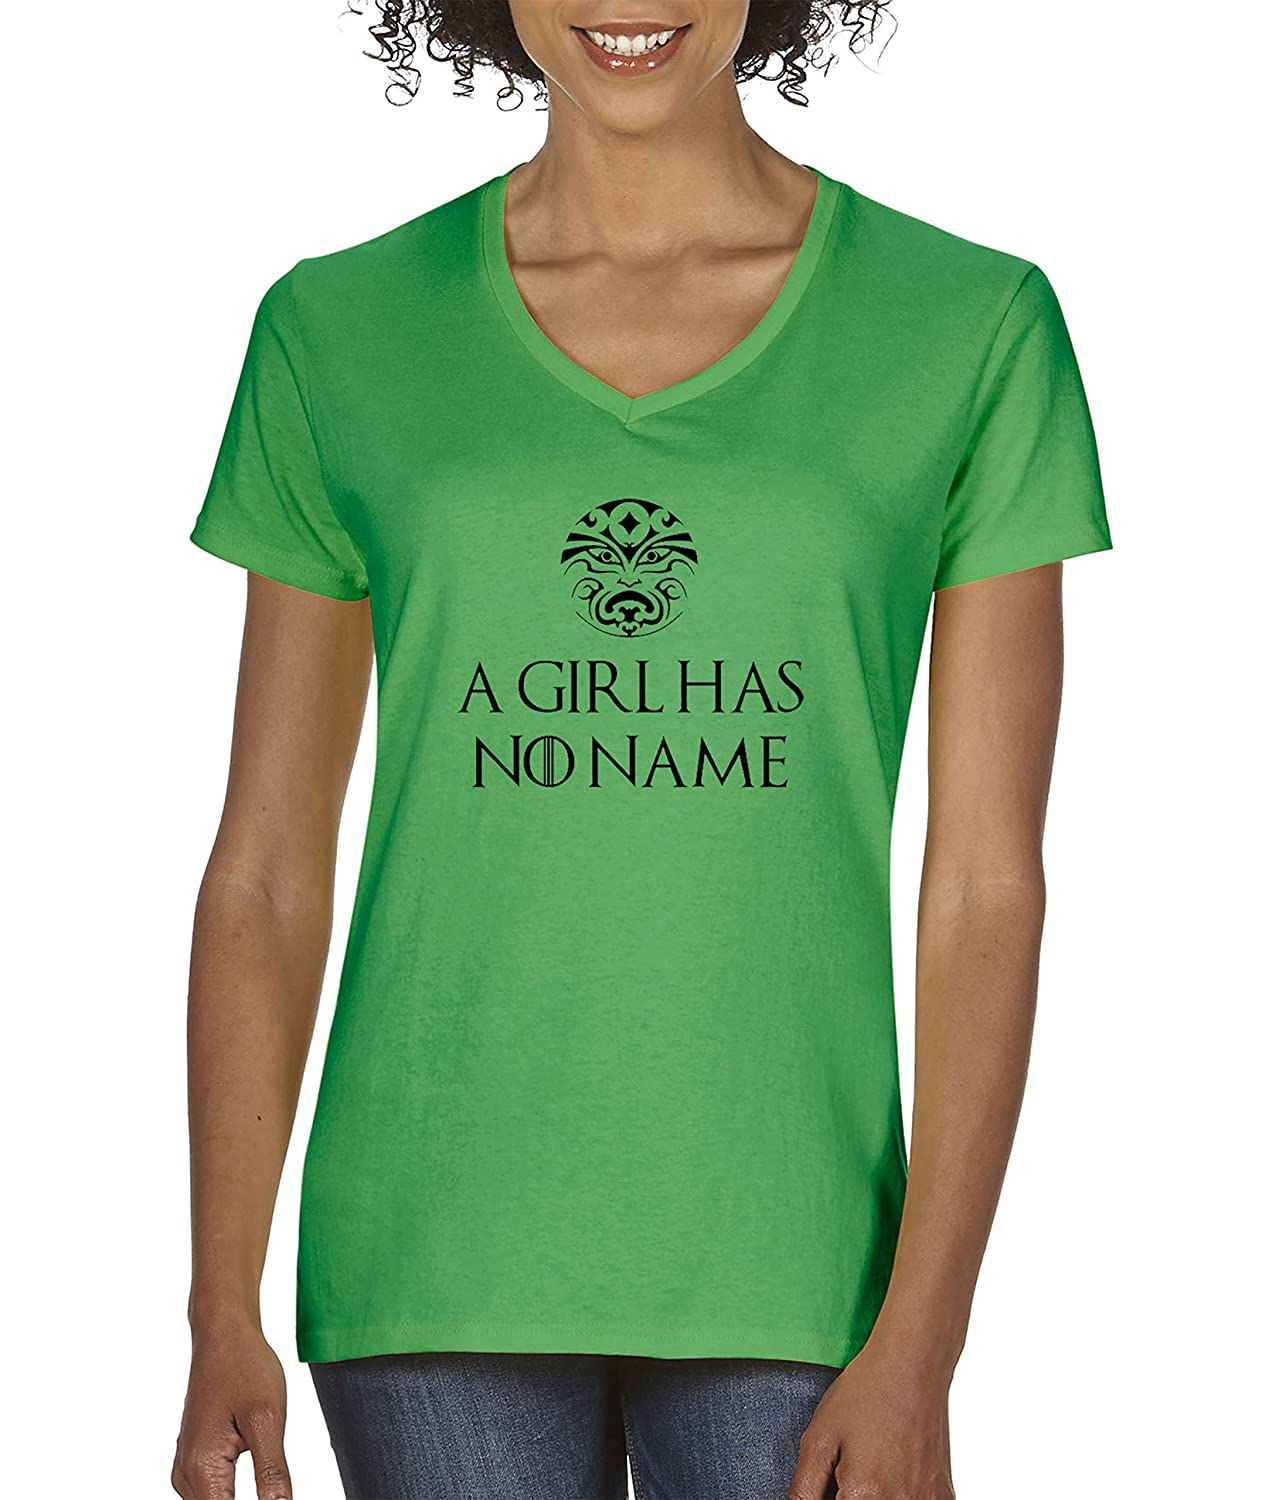 5c407b0d44 Amazon.com: New Way 688 - Women's V-Neck T-Shirt A Girl Has No Name Game of  Thrones: Clothing